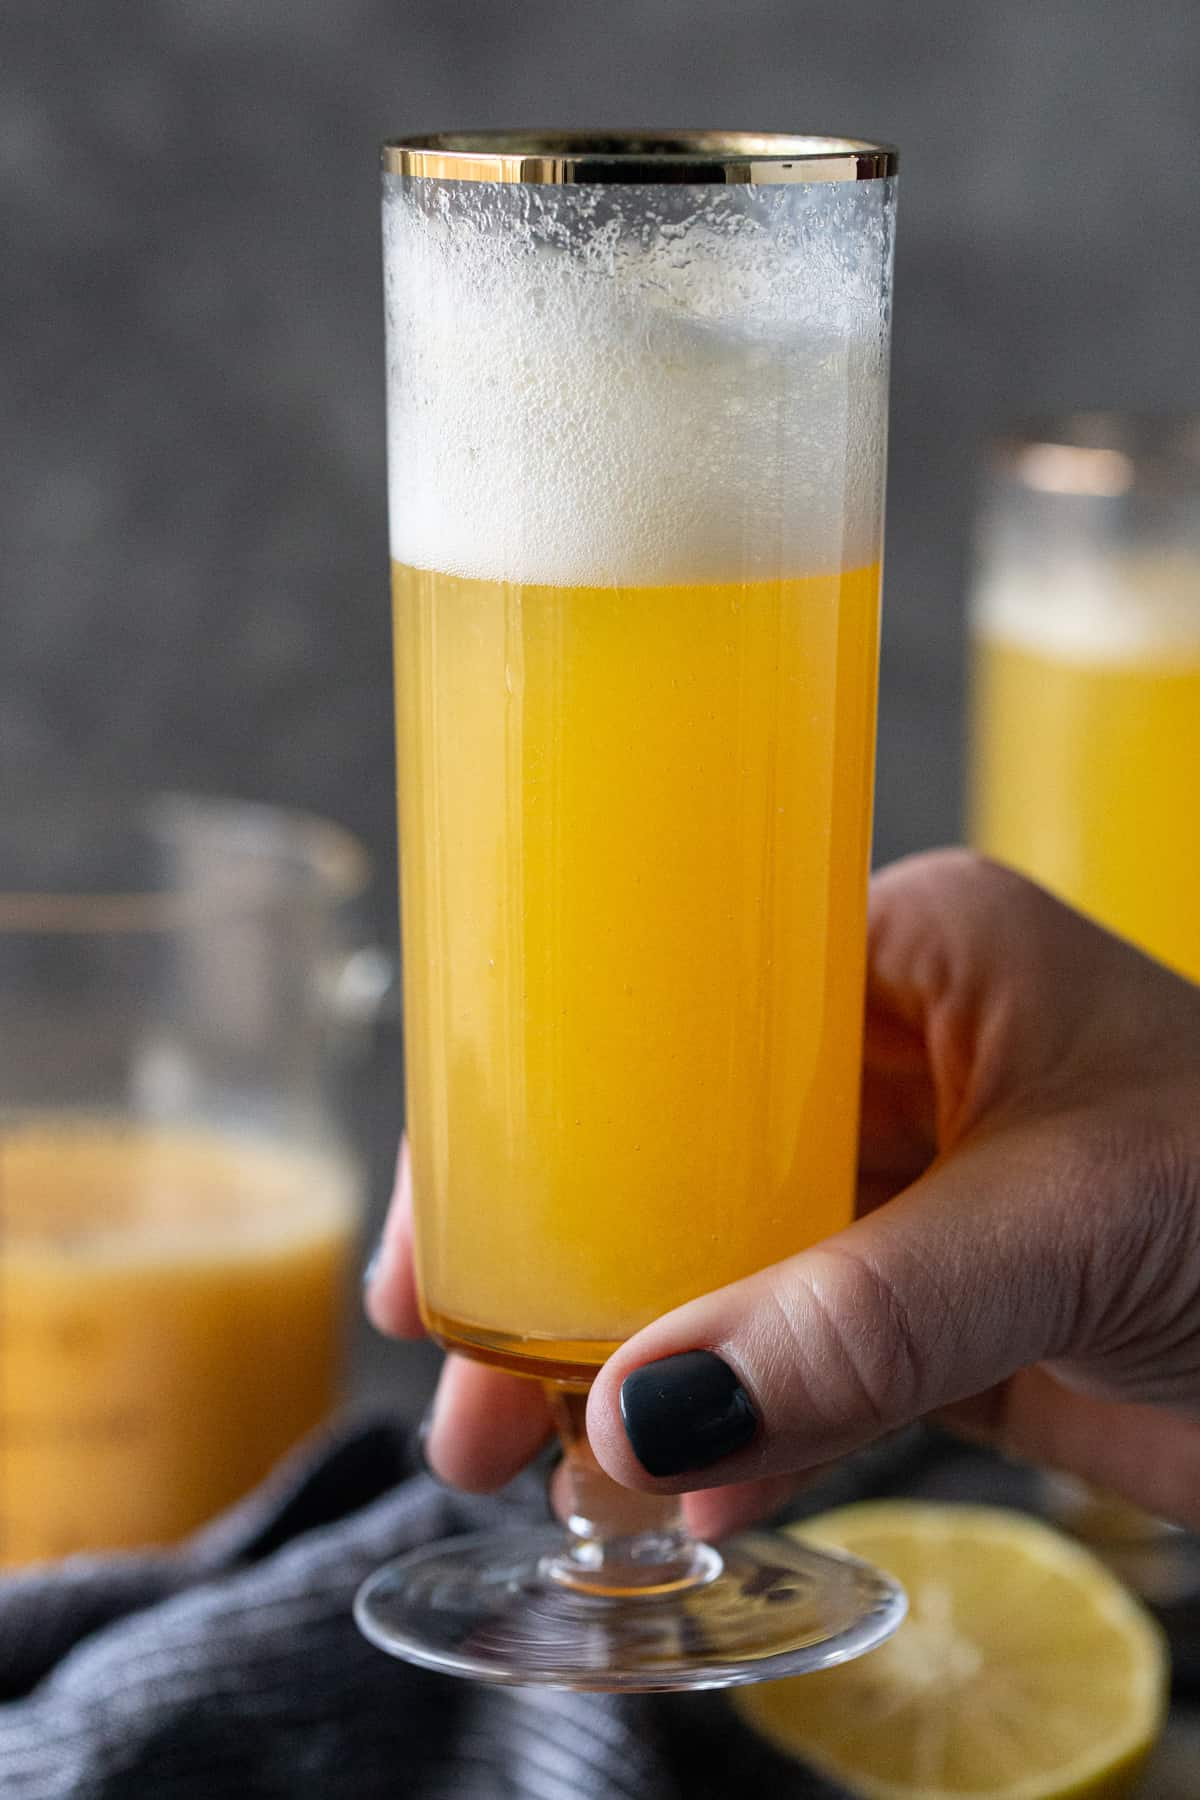 A person holding a glass of bellini on a table, with peach juice and Prosecco.